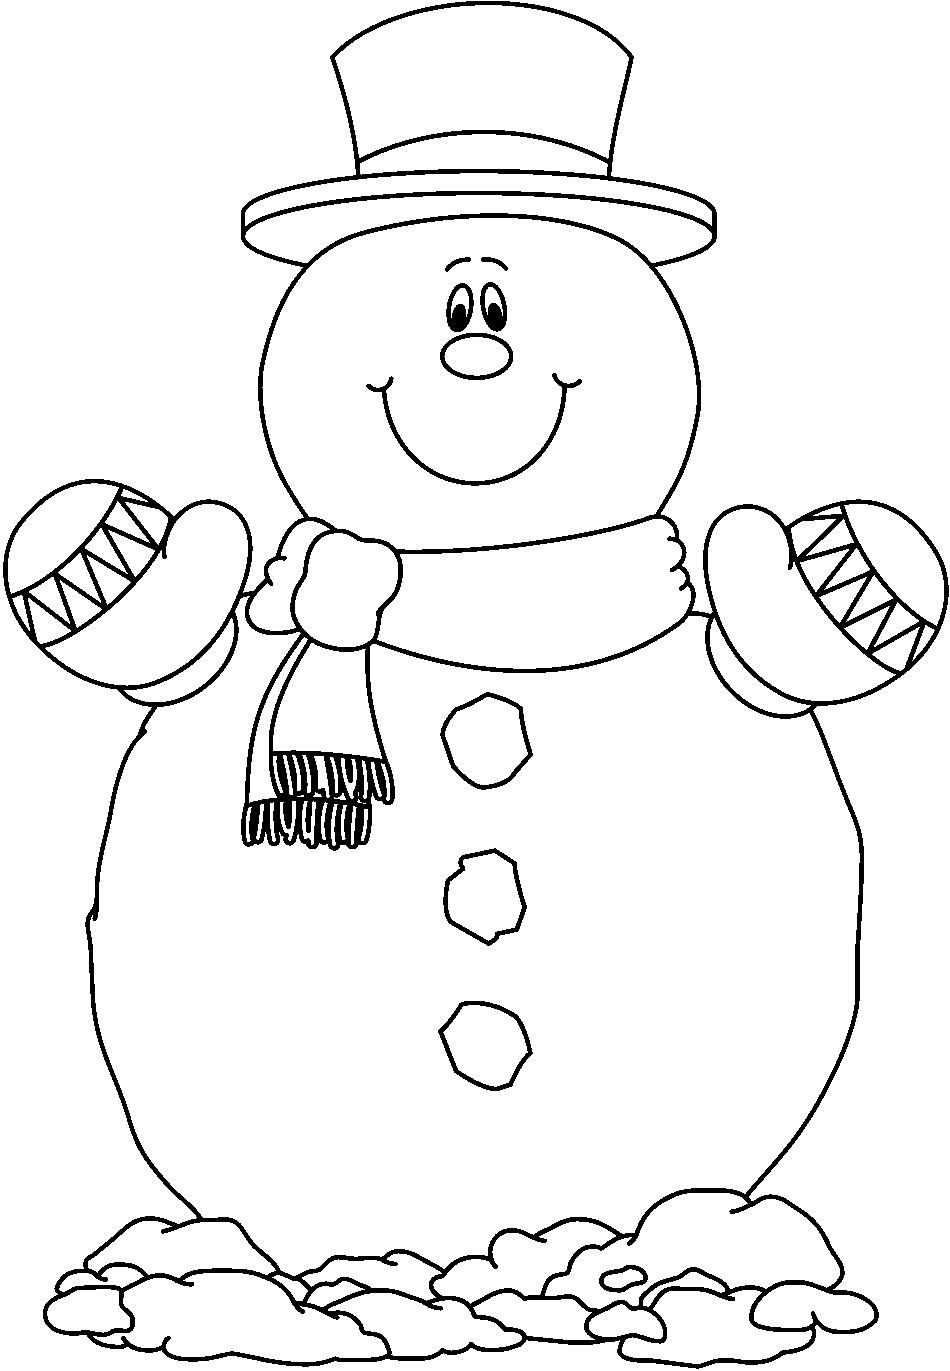 Snowman clipart black and white svg transparent download Snowman black and white snowman emb christmas 8 snowman ... svg transparent download